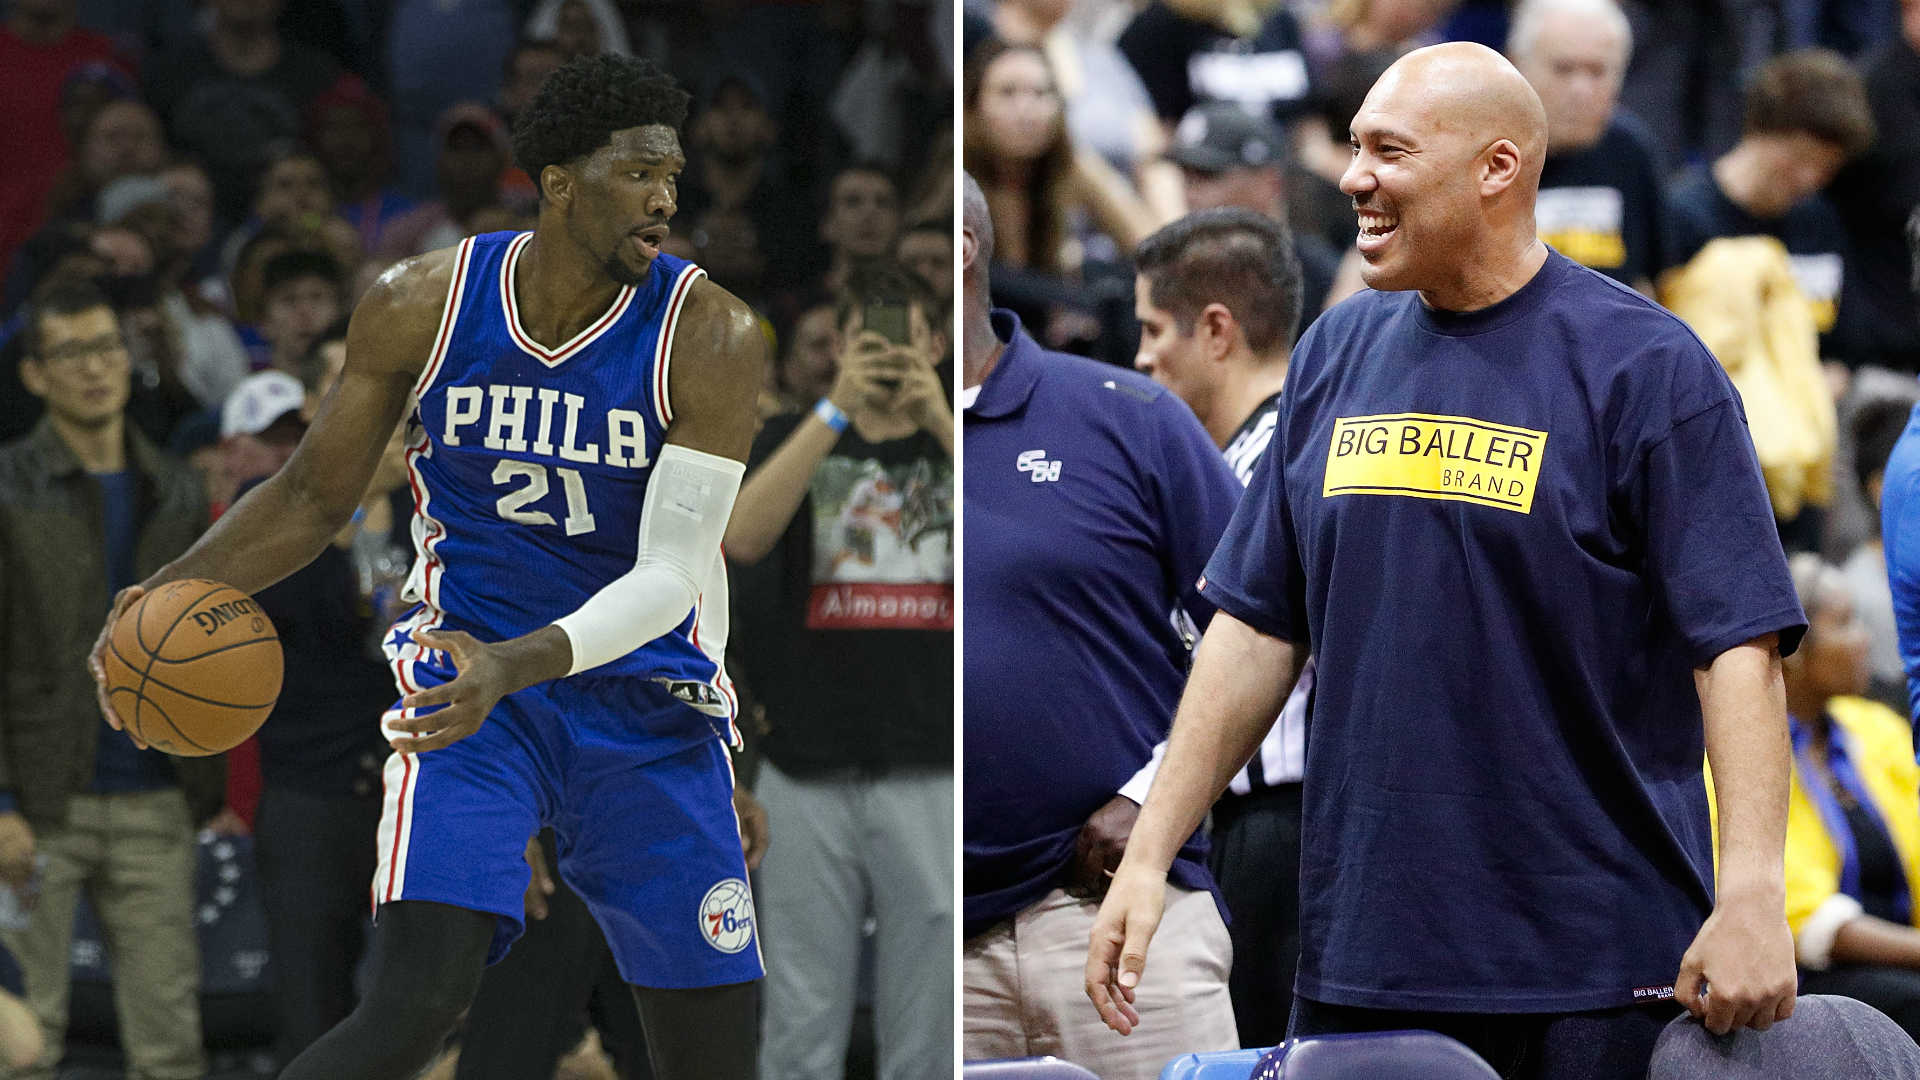 LaVar Ball Fires Back At Joel Embiid: 'You're Dumb & Injury Prone'